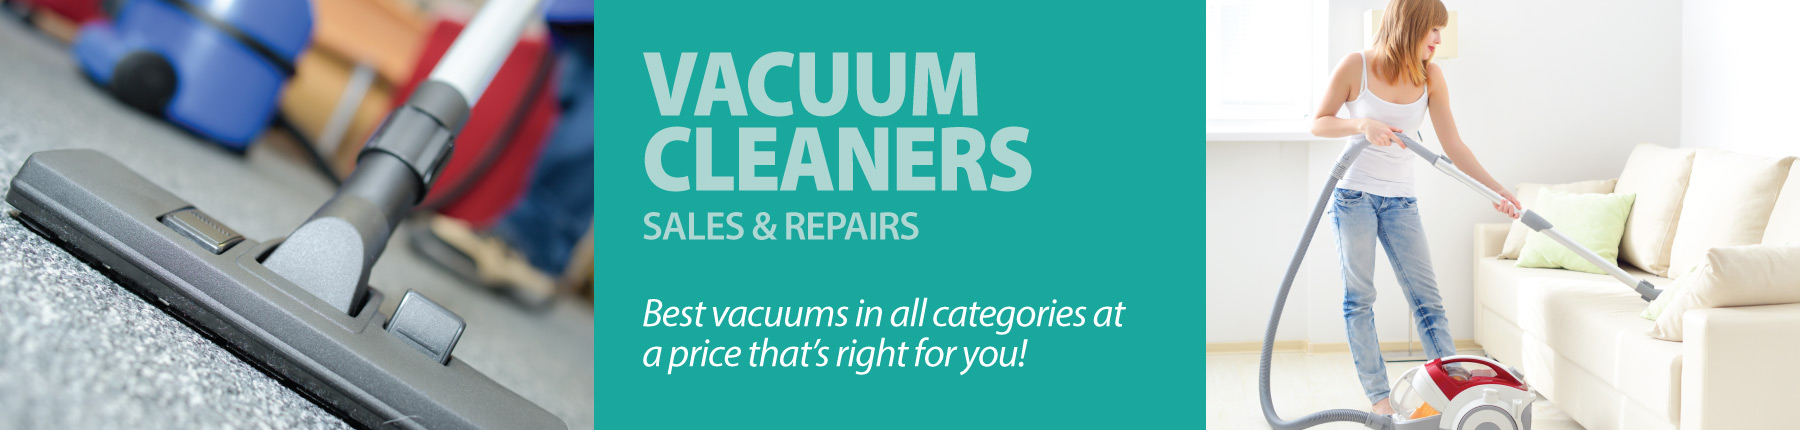 Home Slider - Vacuum Cleaners